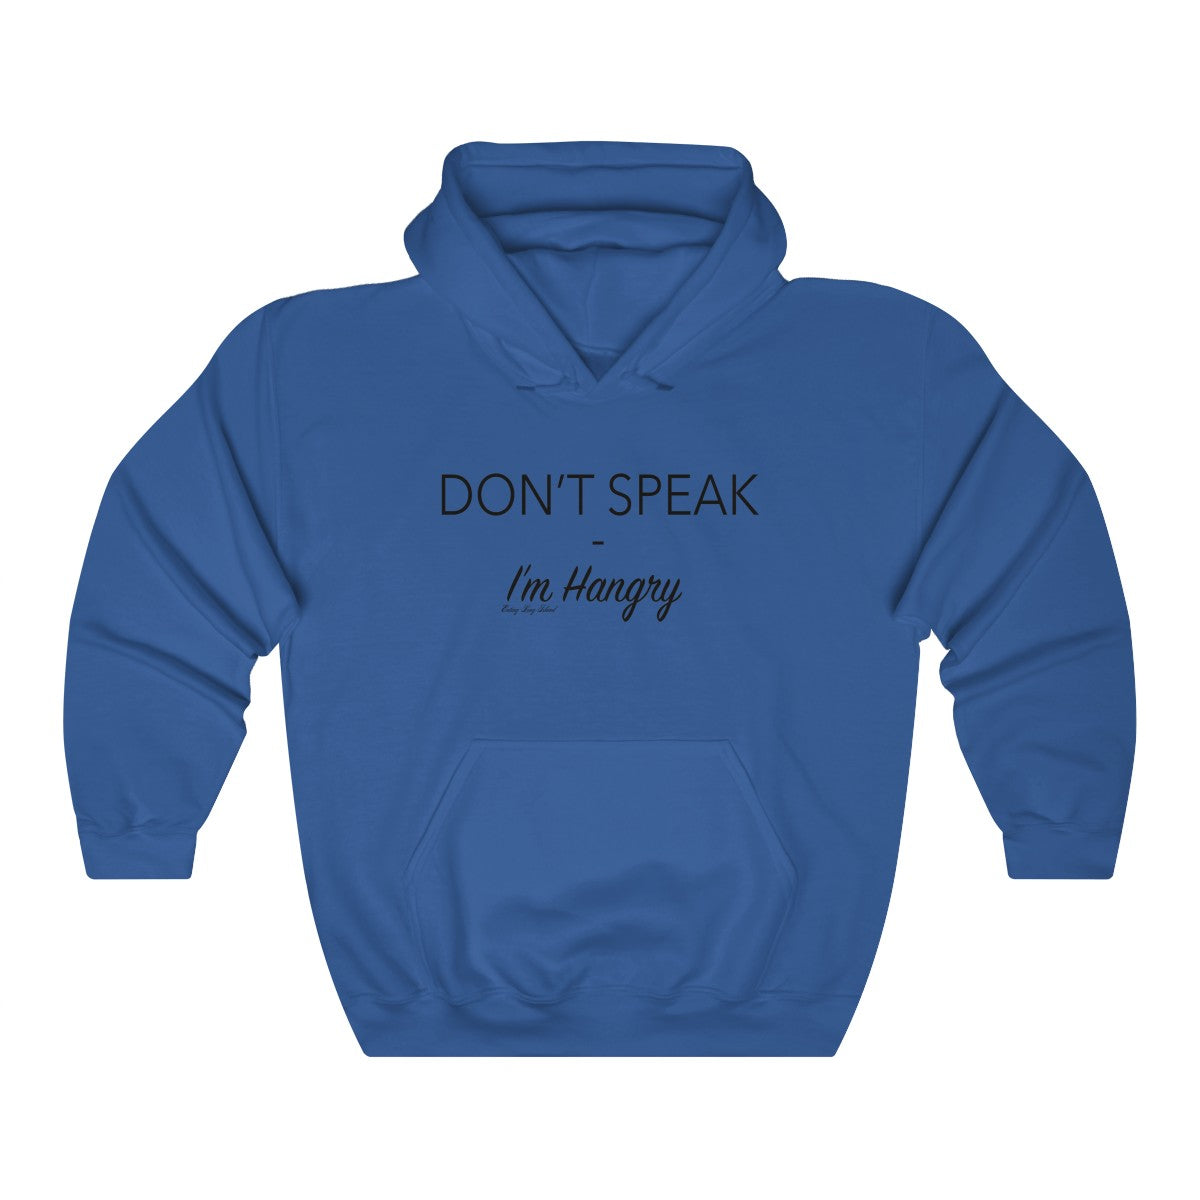 """Don't Speak I'm Hangry"" Unisex Heavy Blend™ Hooded Sweatshirt - Eating Long Island Inc."